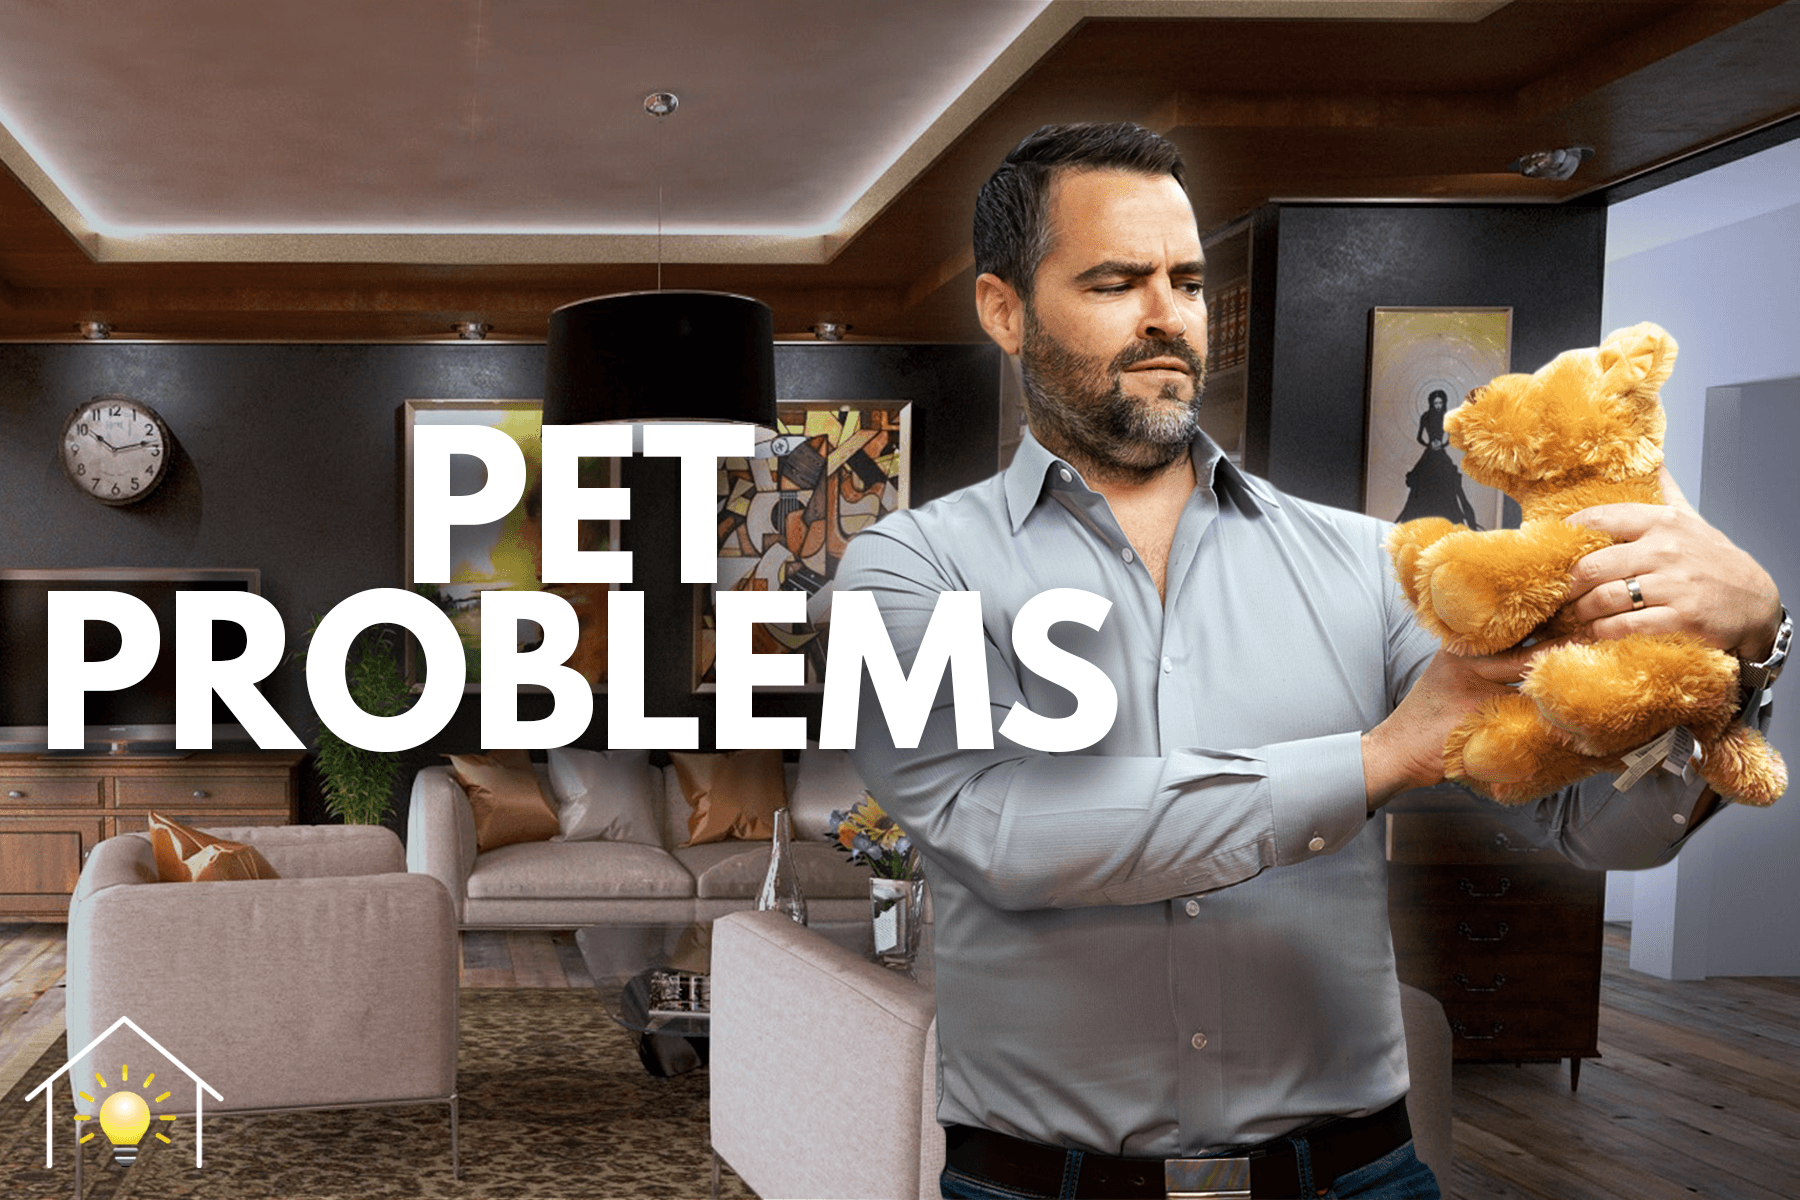 How To Sell a House With Pets